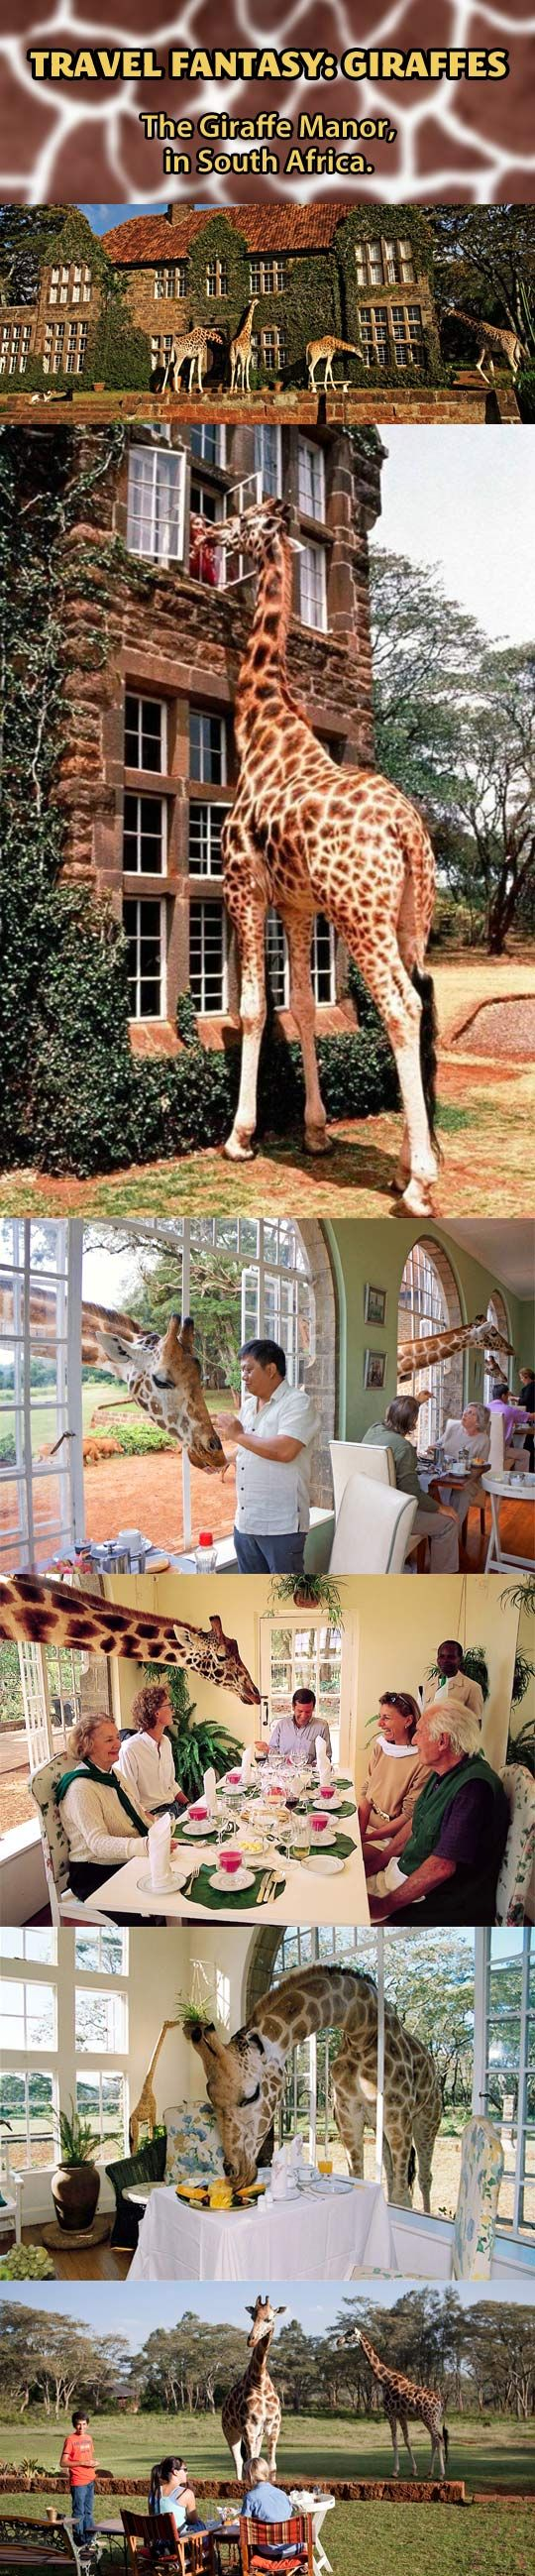 Giraffe Manor, Nairobi, Kenya. If there is any place in this Earth that I was born destined to visit besides Harry Potter Theme Park, it is this magical unearthly utopia of long-necked wondercreatures. Please mail me there, somebody. Anybody.